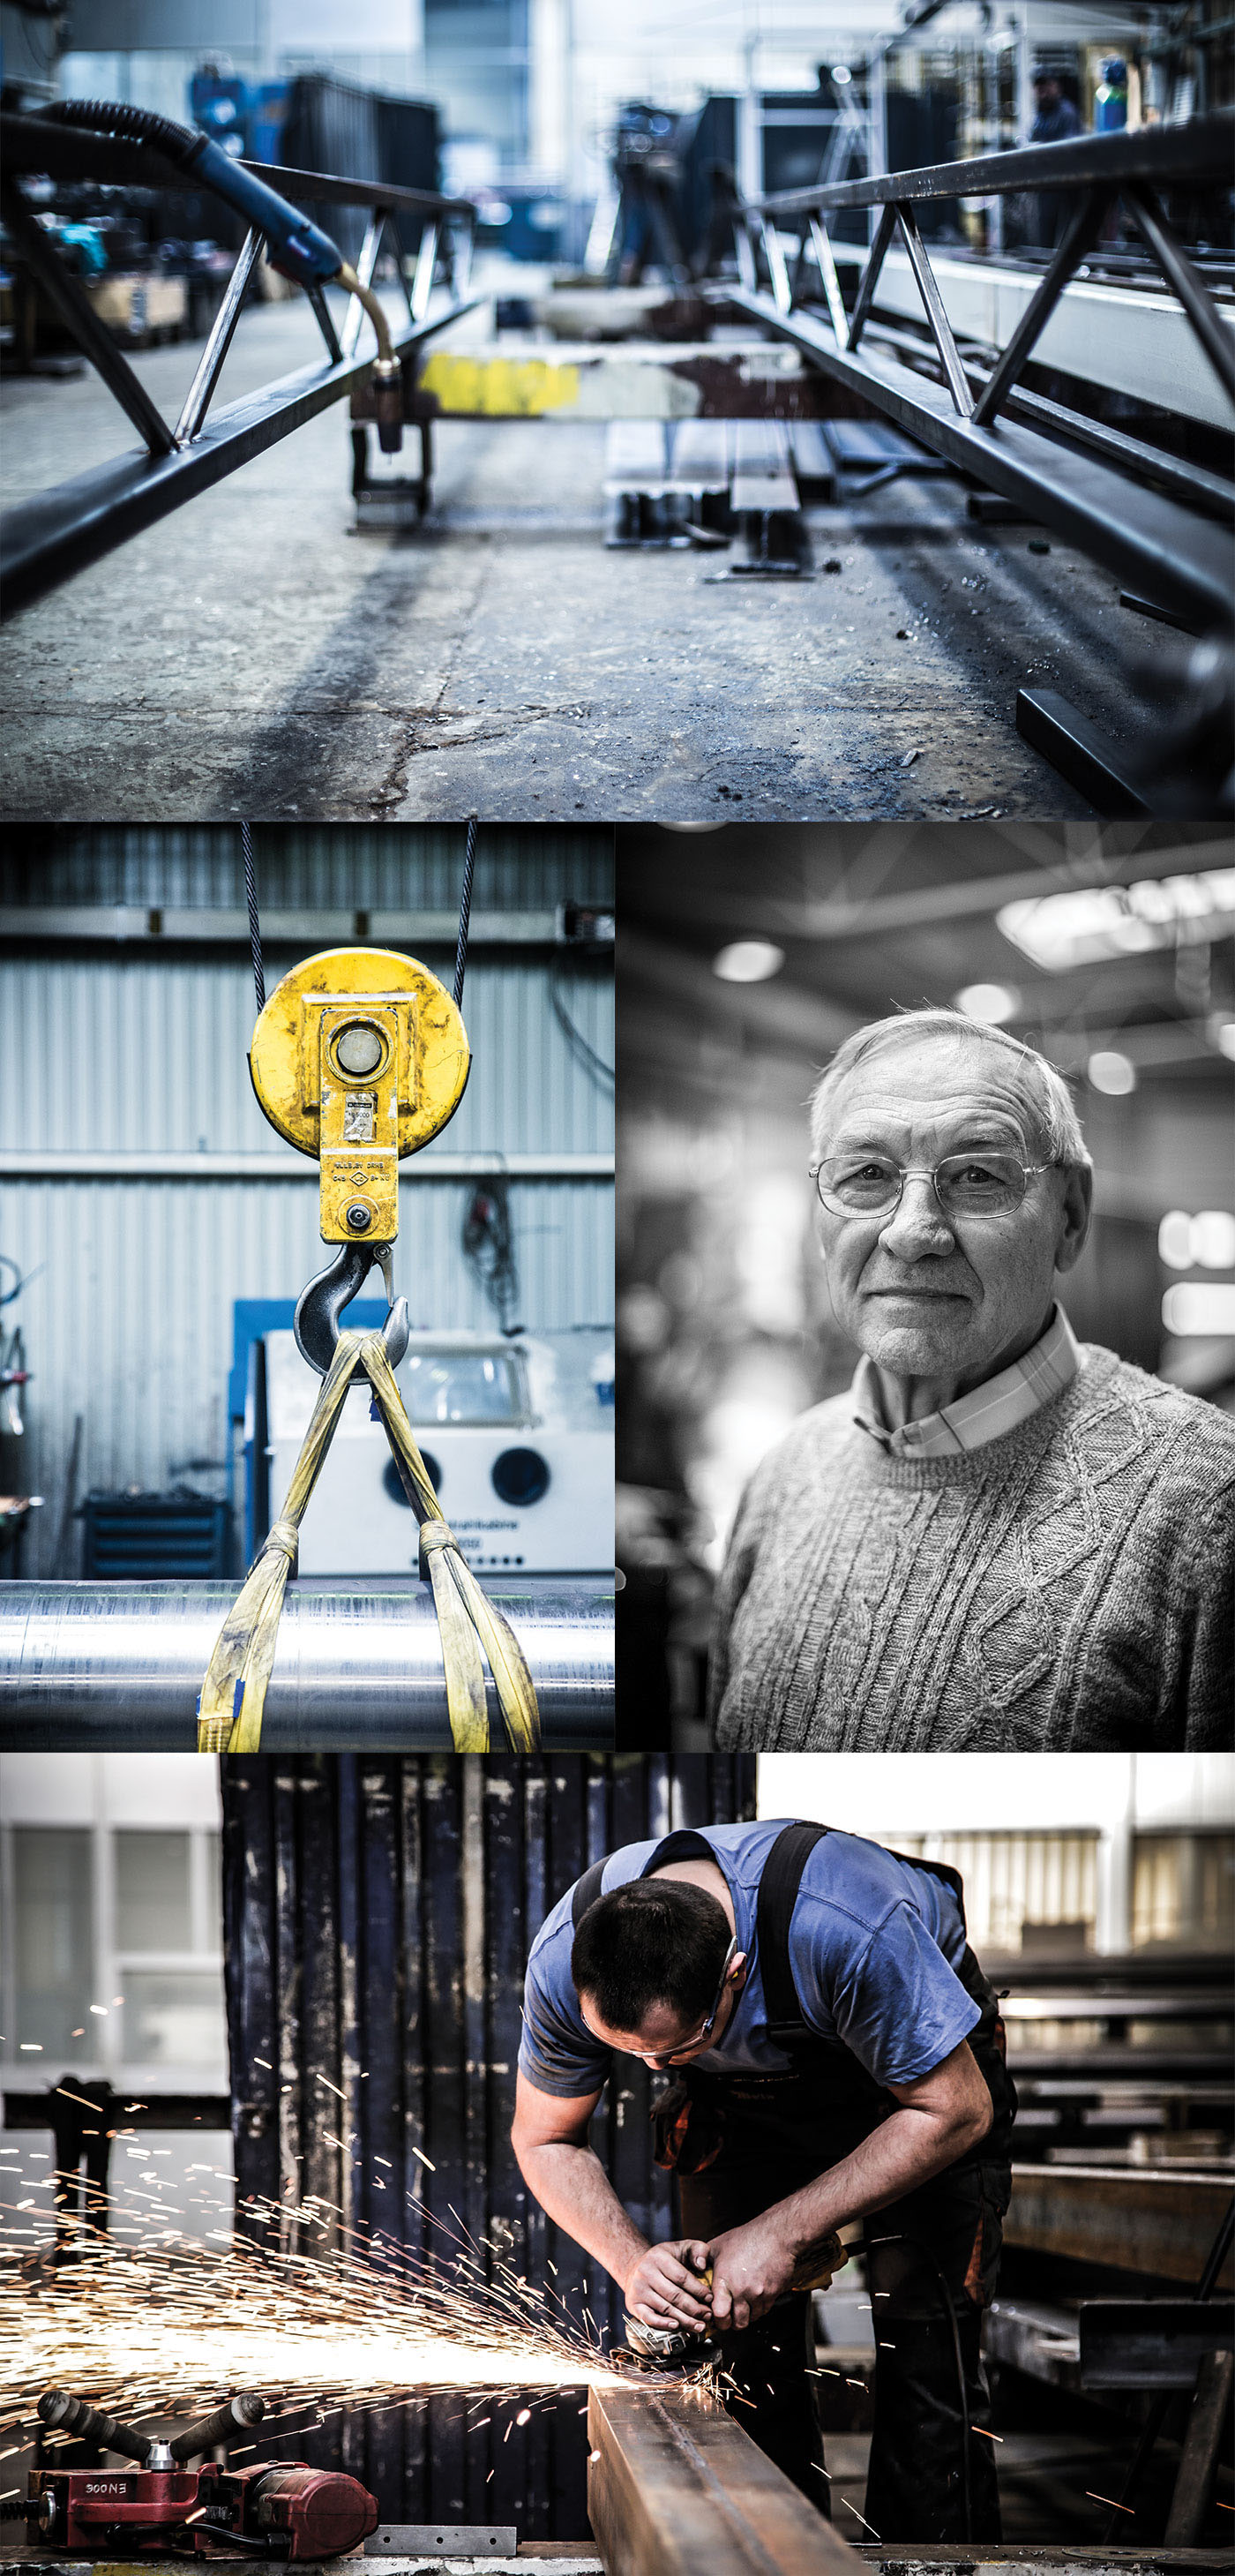 Adobe Portfolio sermabud Machining Industrial Automation locksmithing welding technological installations Relocation industrial equipment Production Project toolshop sales electric automation specialist quality control